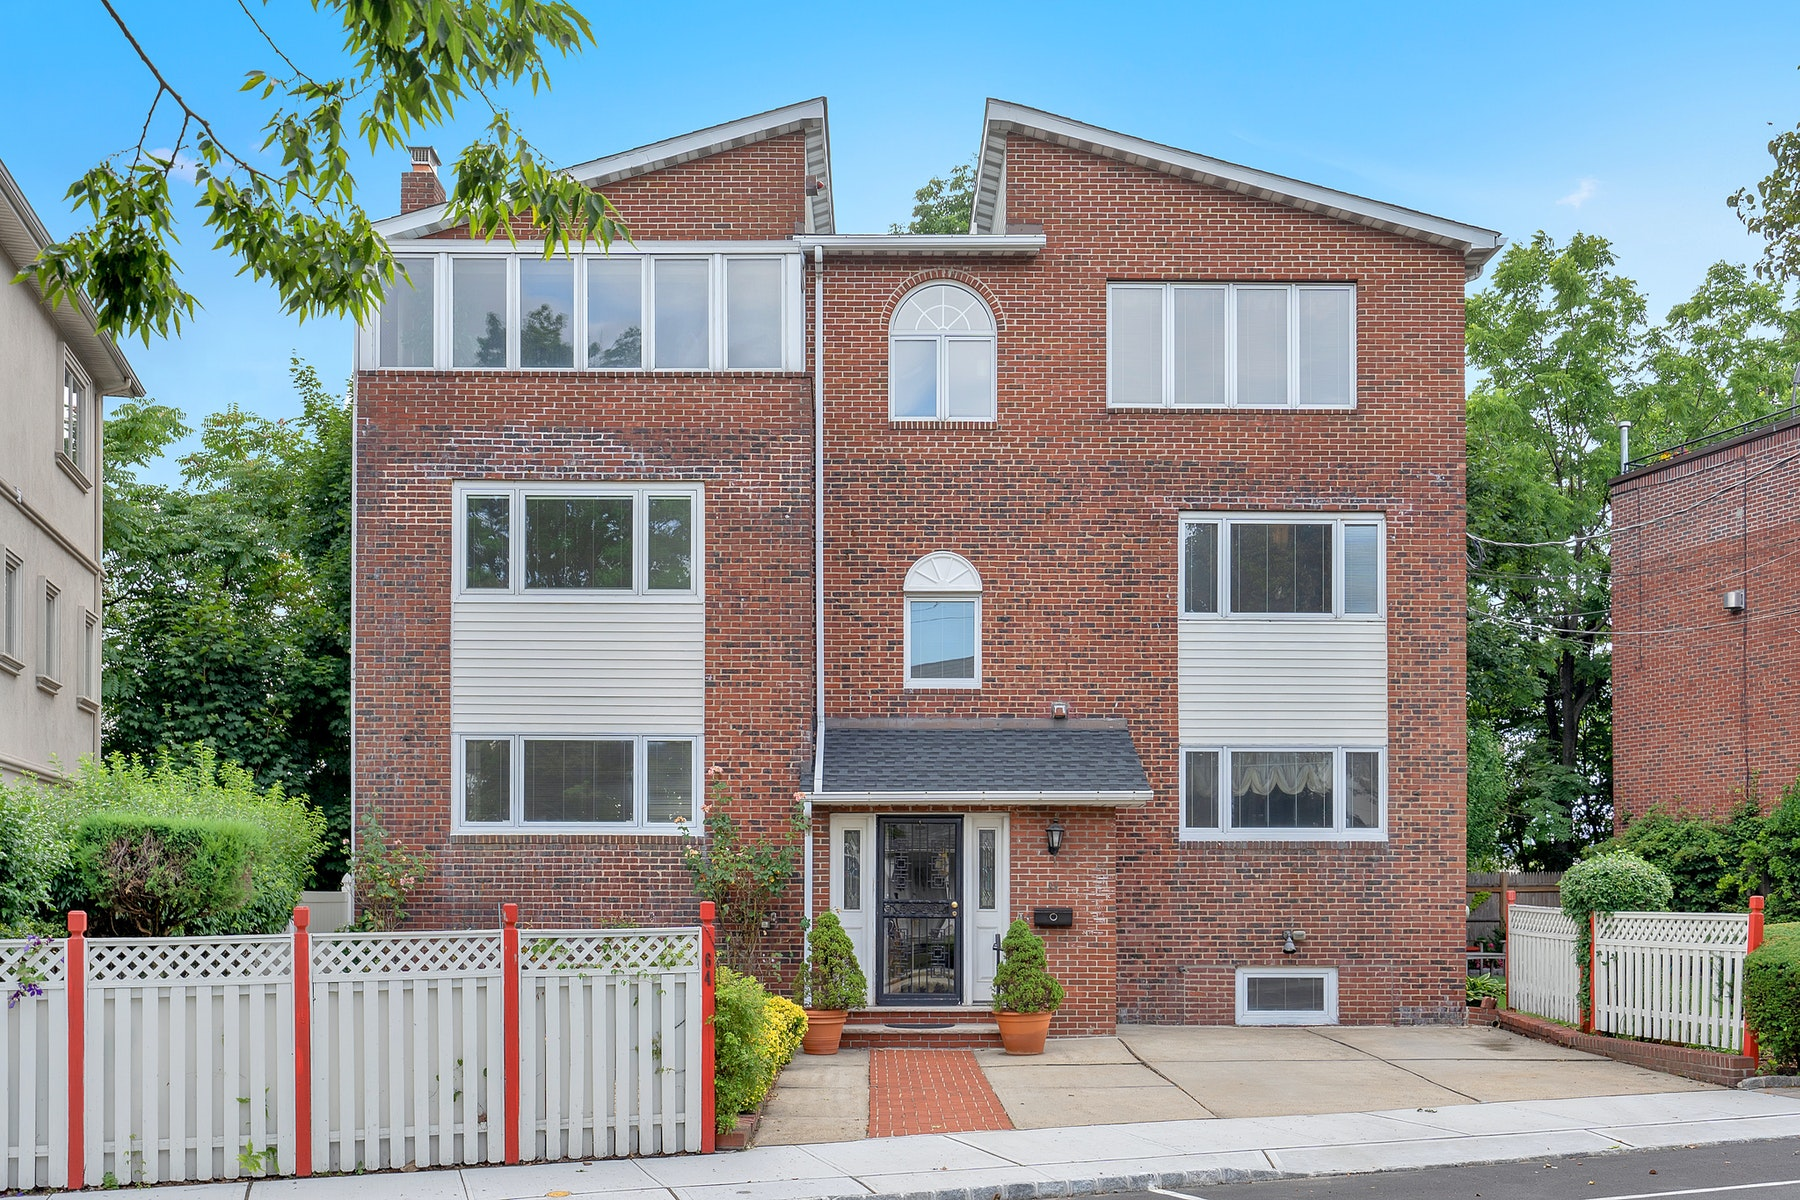 Single Family Homes for Sale at ON A PRIVATE, QUIET AND HIDDEN DEAD END LANE IN THE WEEHAWKEN BLUFFS AREA, 64 Kingswood Road, Weehawken, New Jersey 07086 United States